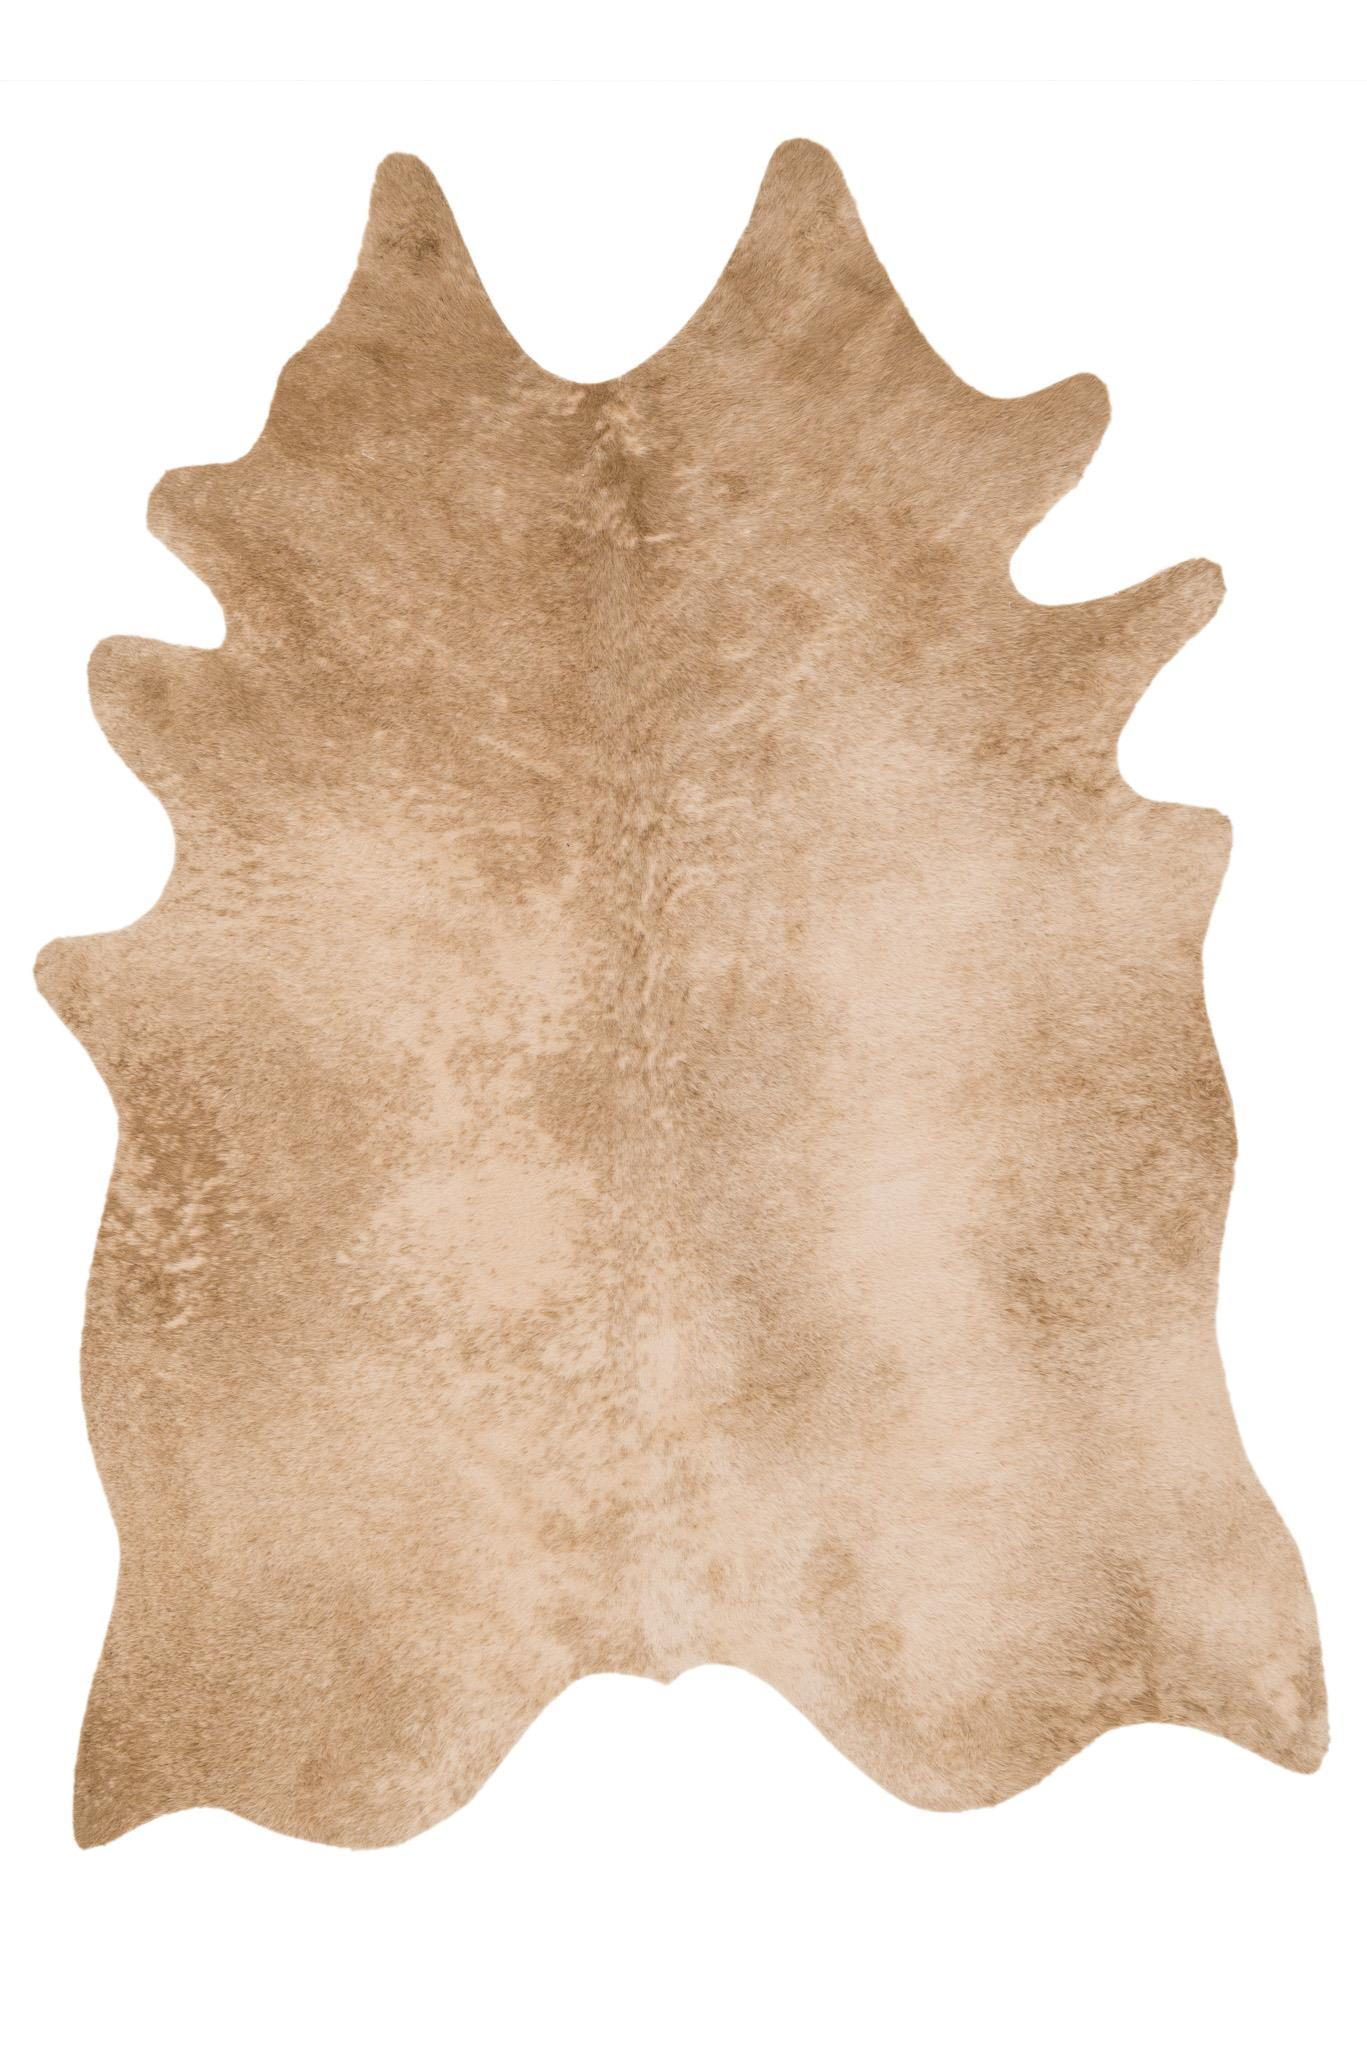 "Grand Canyon GC-09 Tan-Area Rug-Loloi-3'-10"" X 5'-The Rug Truck"